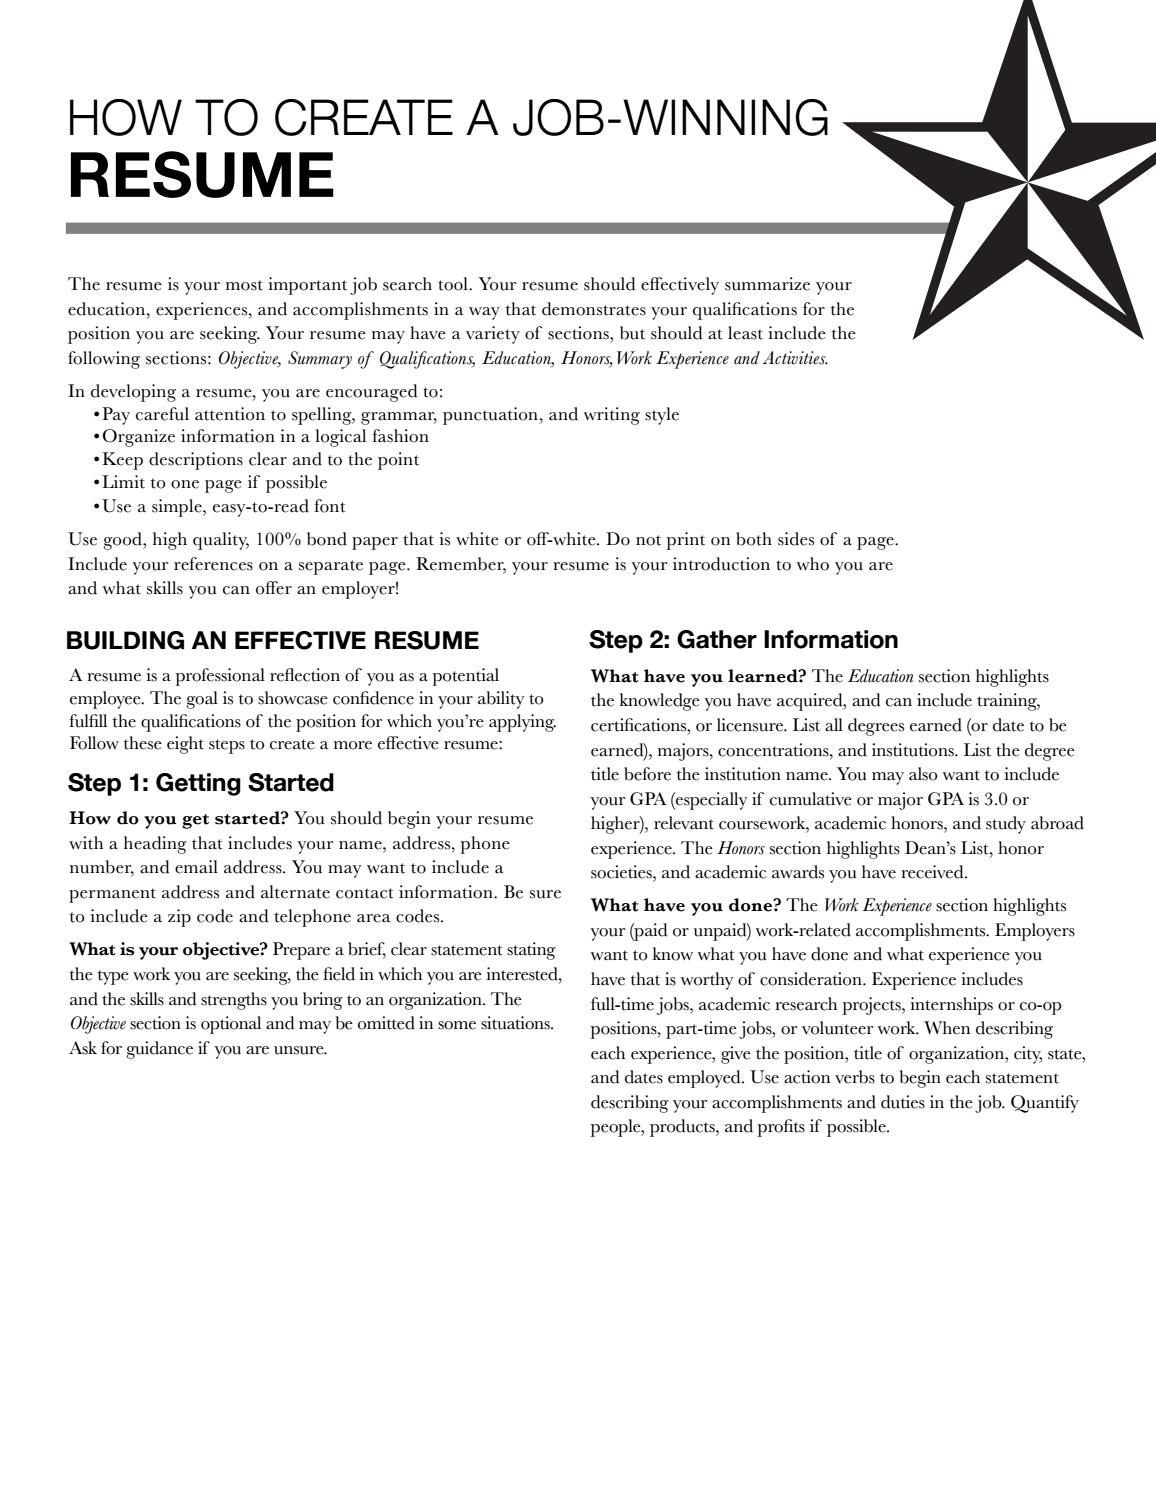 Resume by Texas State University Career Services issuu